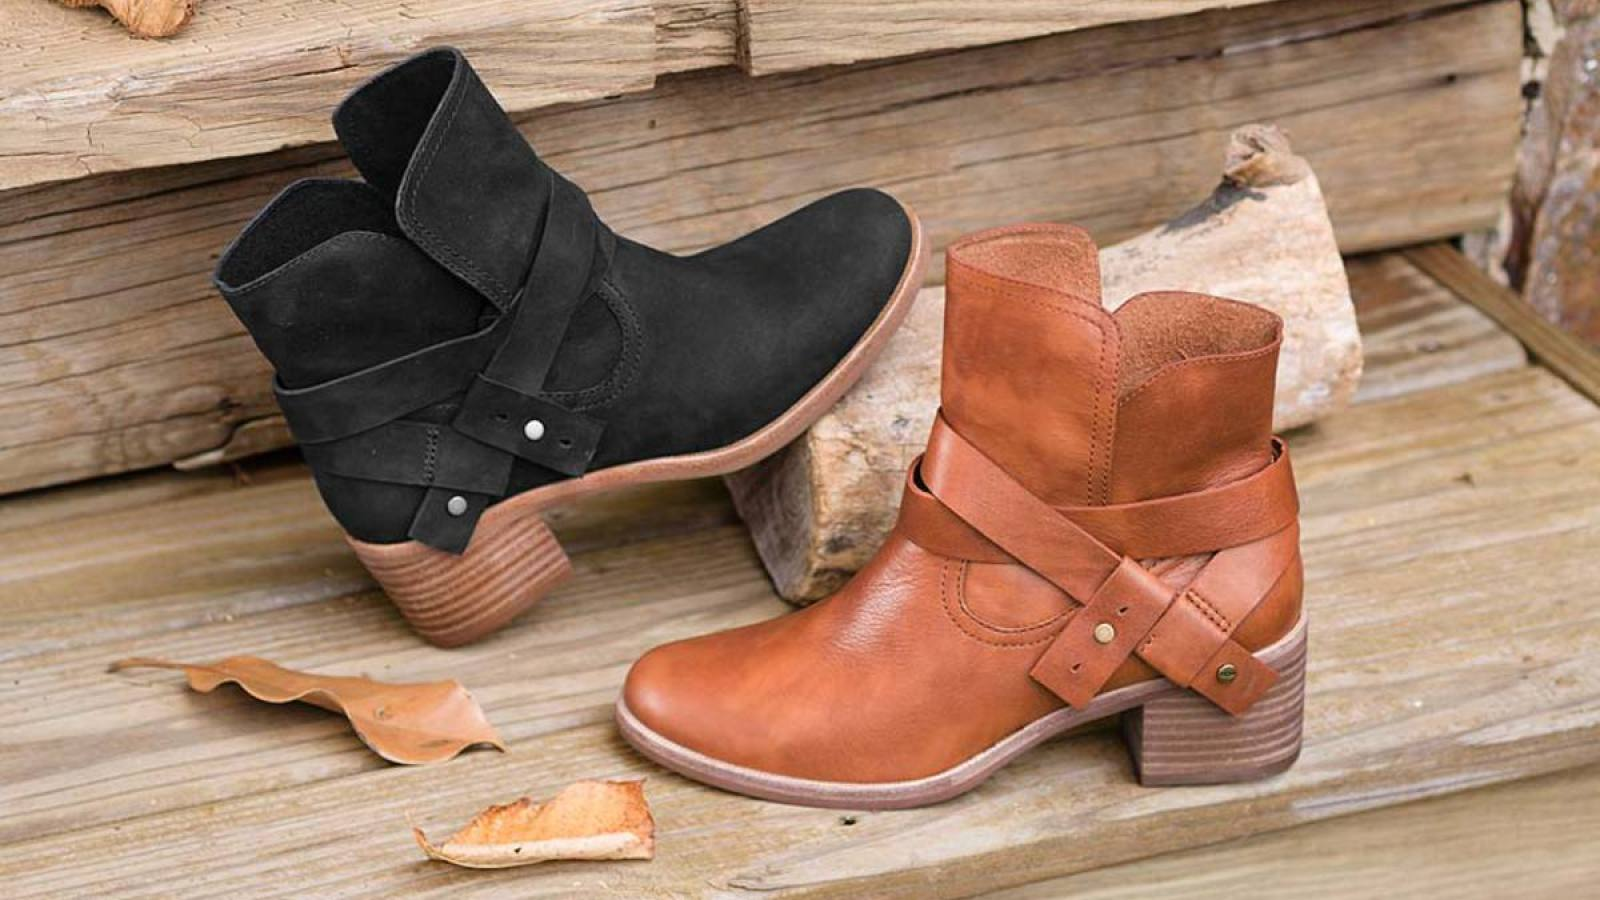 5eaddf03570 Shop Ugg Boots for the Season Up to 50 Percent Off